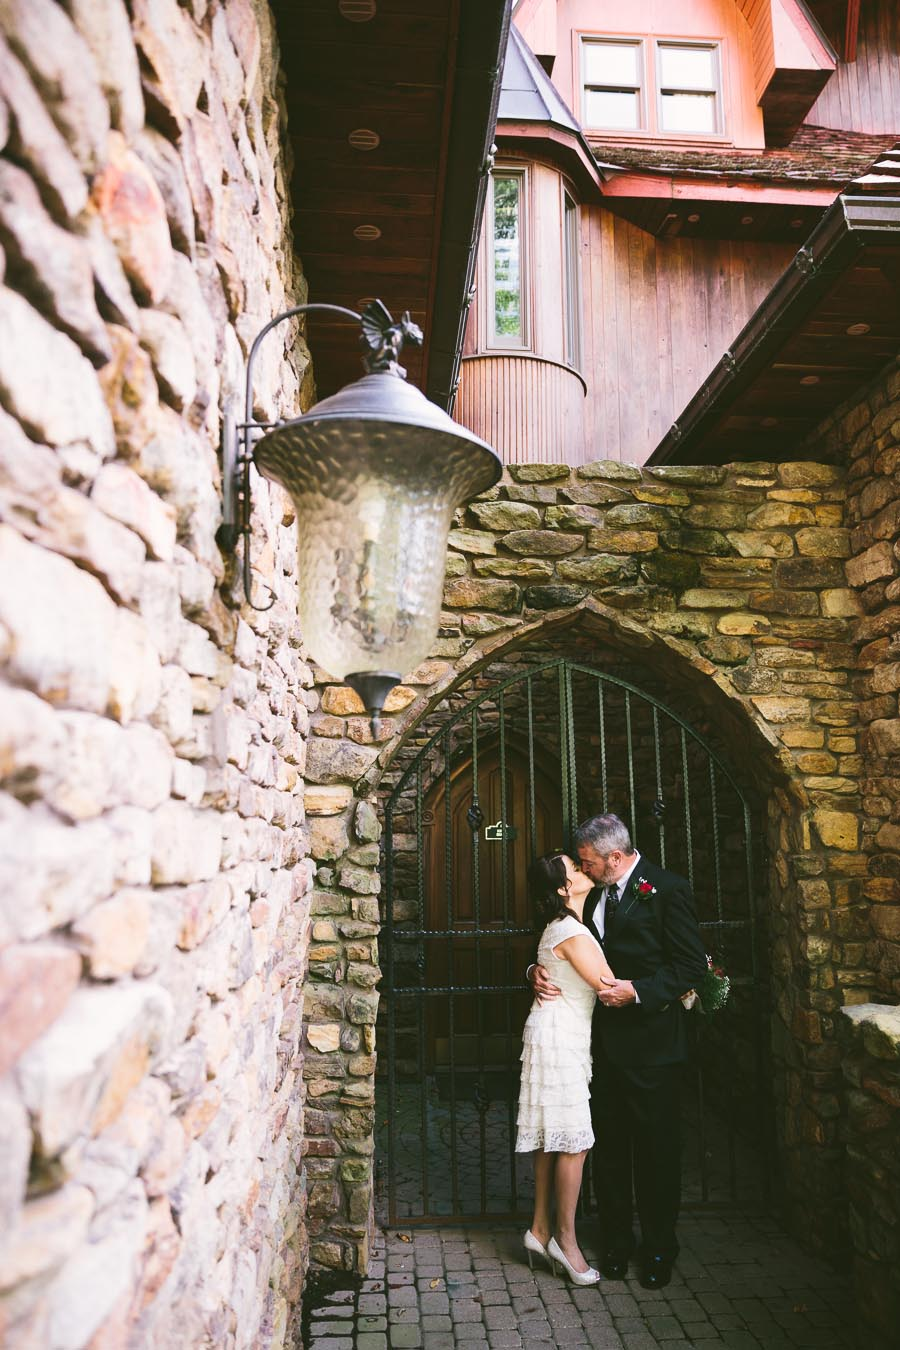 mohican-ohio-wedding-photography-landolls-castle-fall-28.jpg